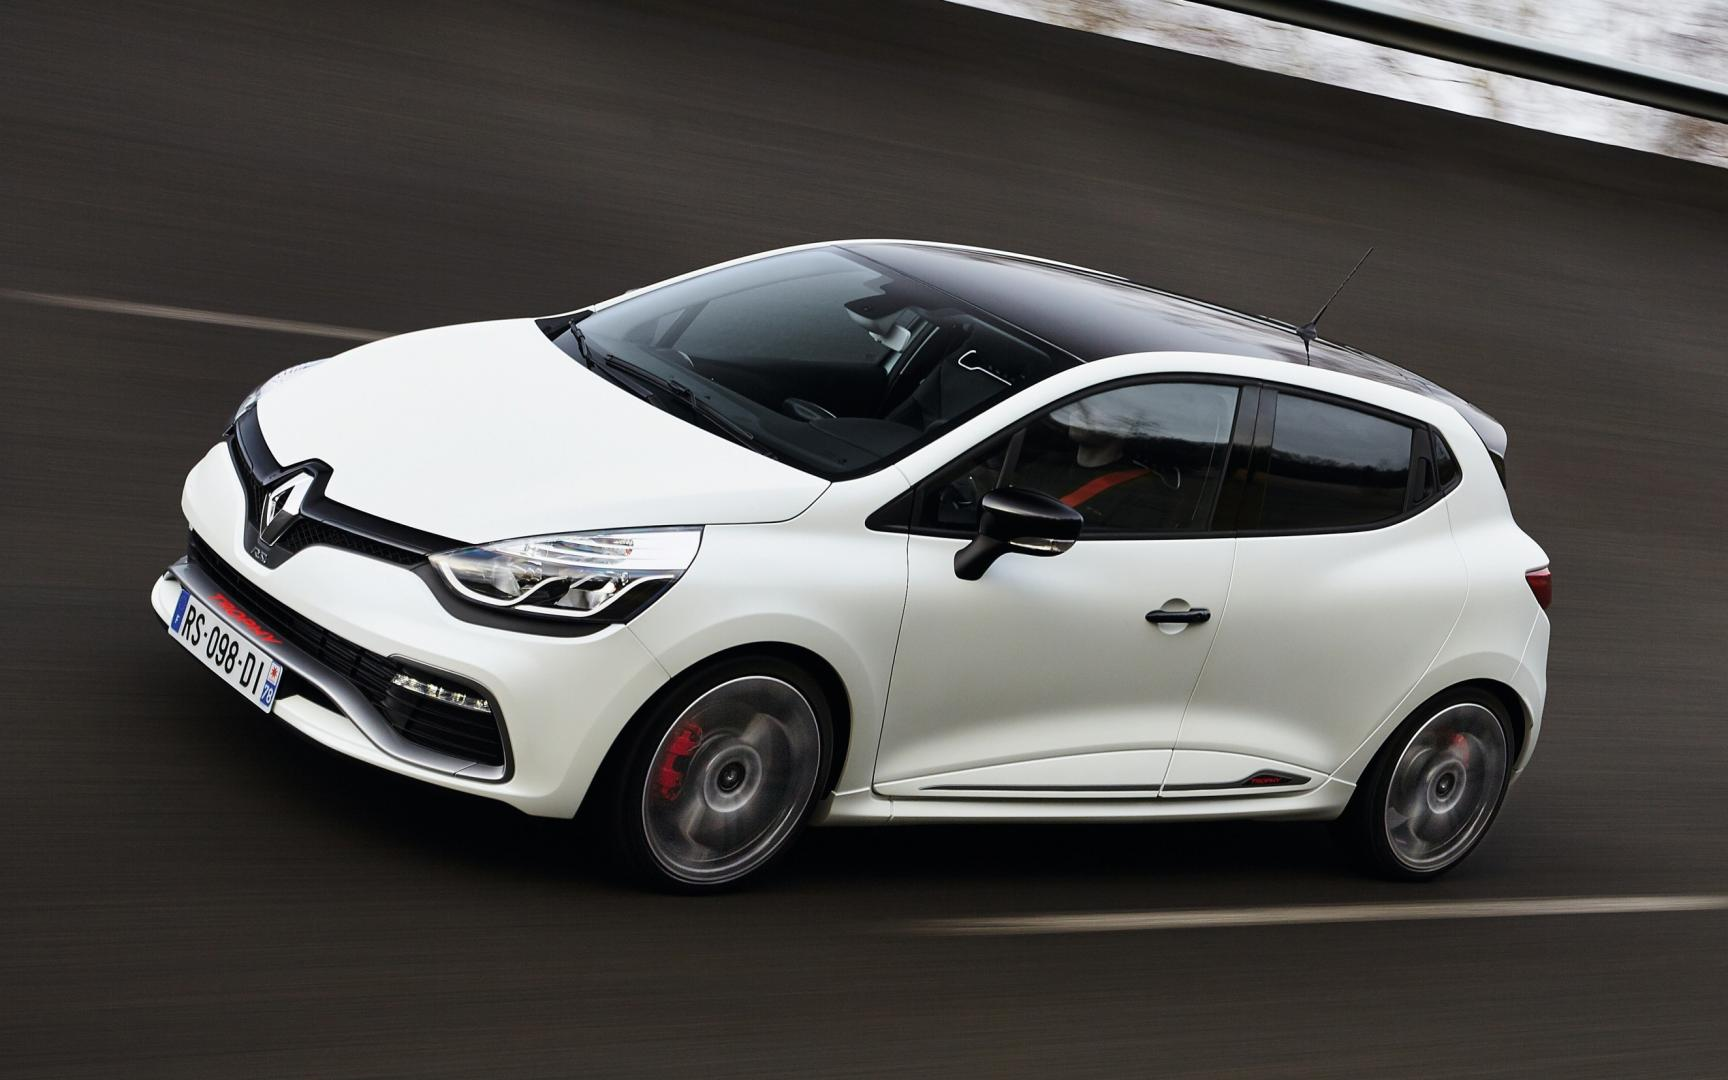 renault clio rs 220 edc trophy 2016 test en specificaties topgear. Black Bedroom Furniture Sets. Home Design Ideas